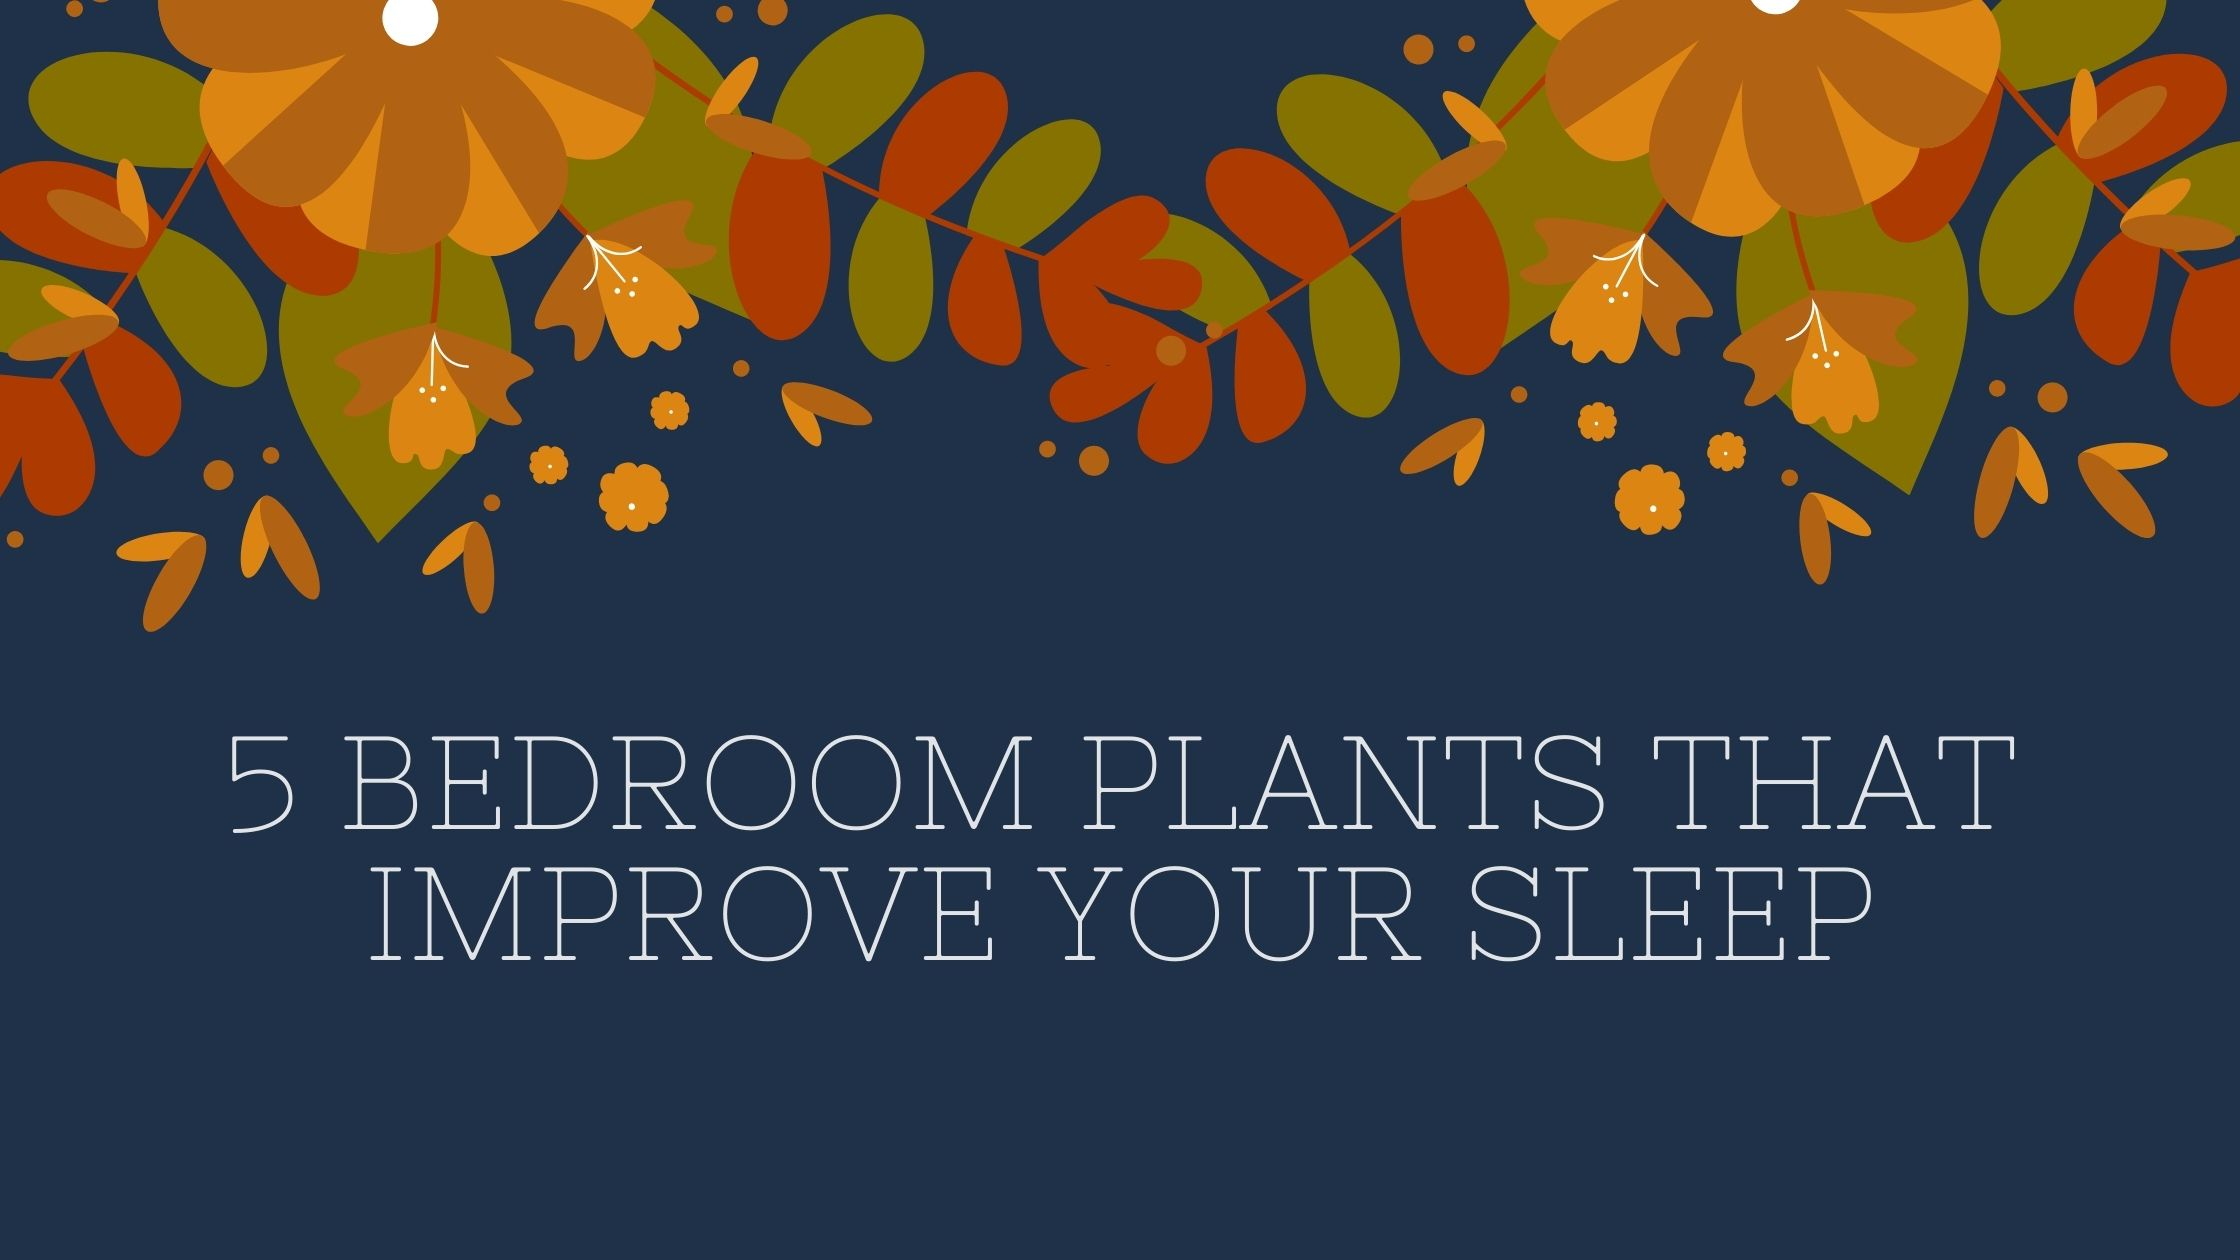 5 Bedroom plants that improve your sleep